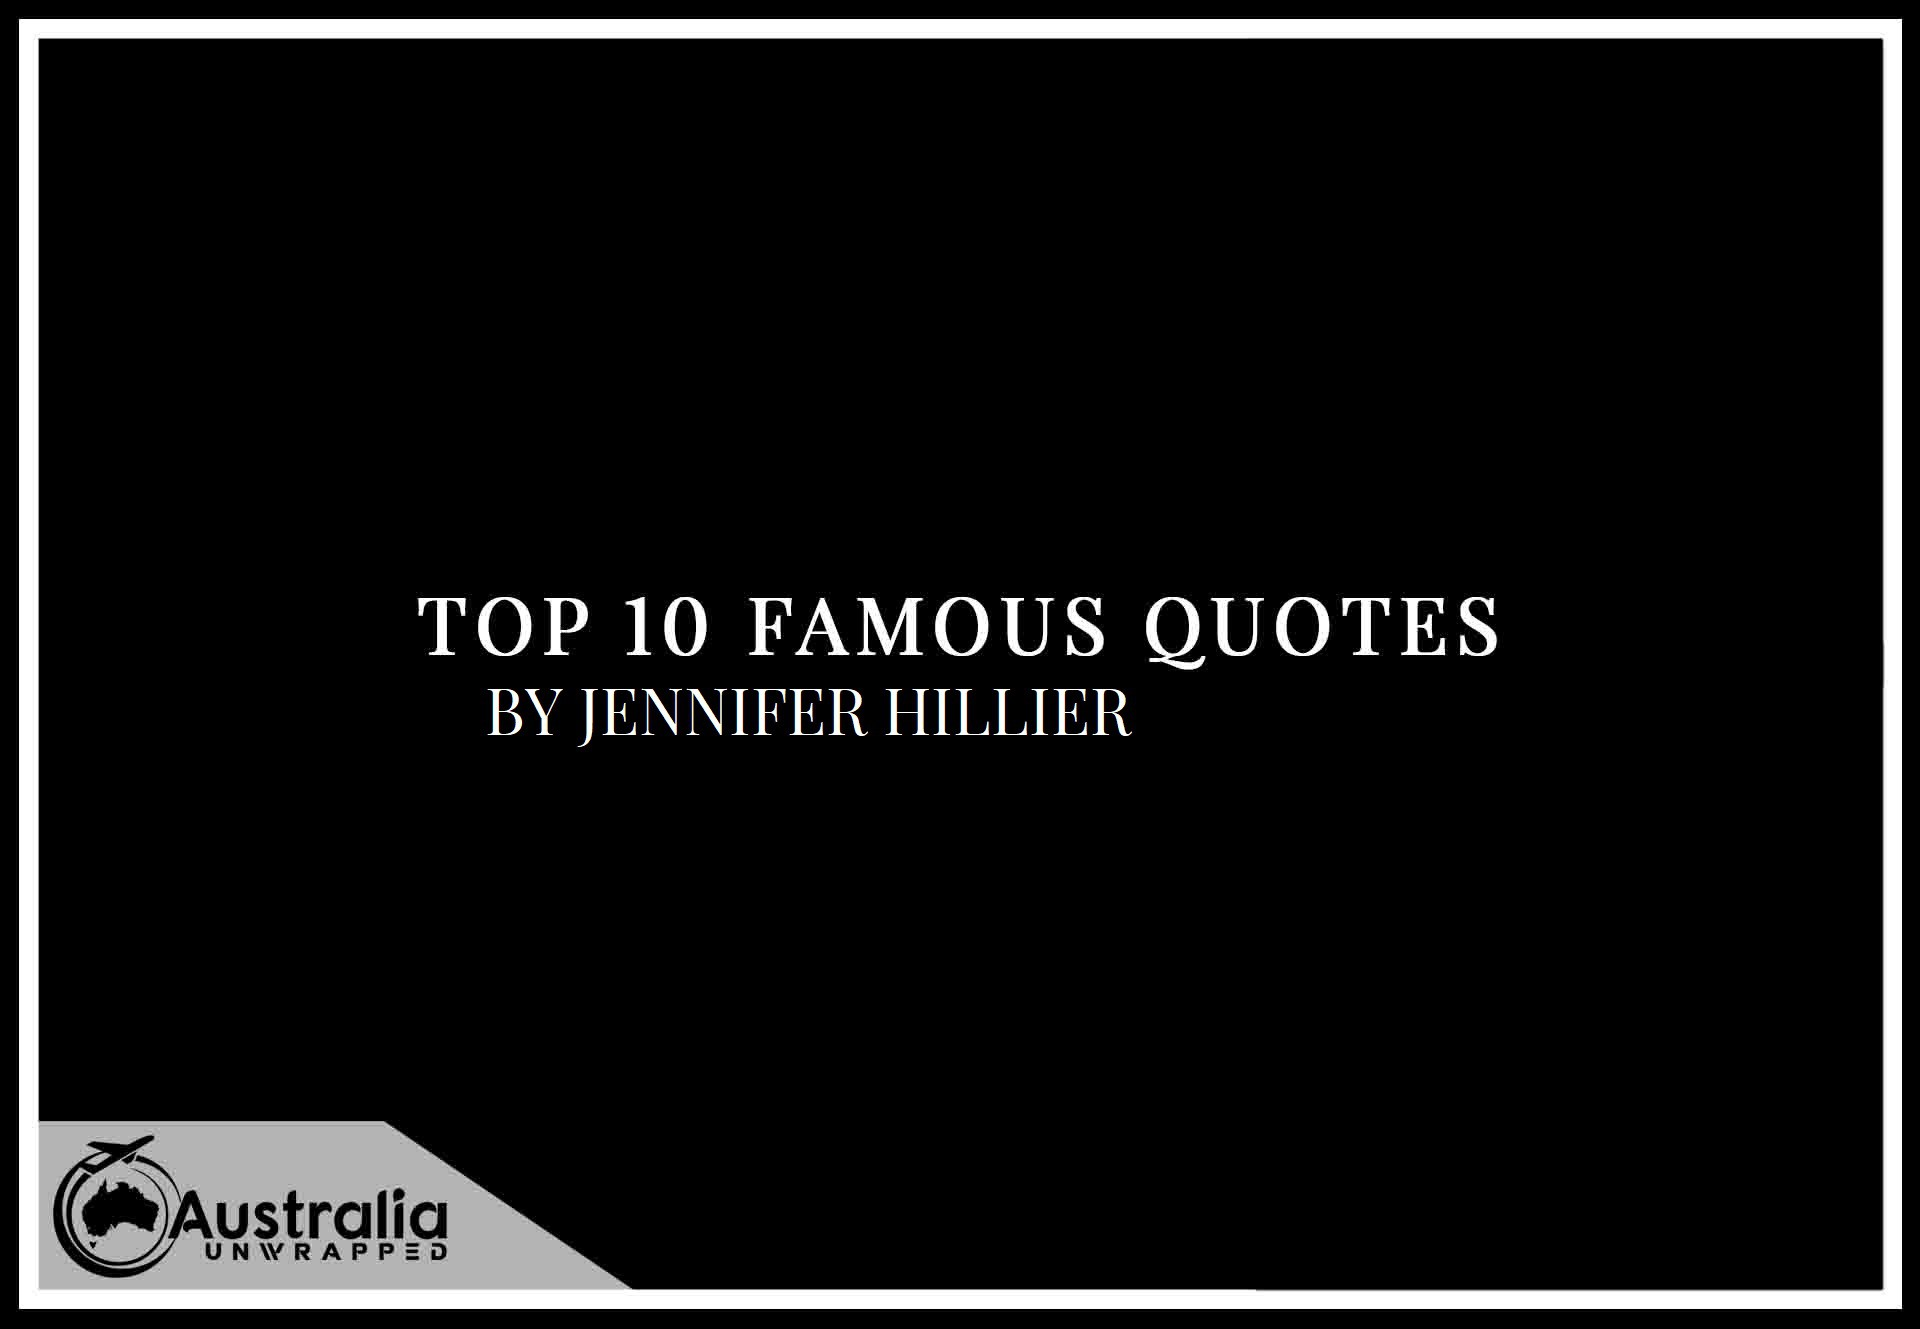 Top 10 Famous Quotes by Author Jennifer Hillier